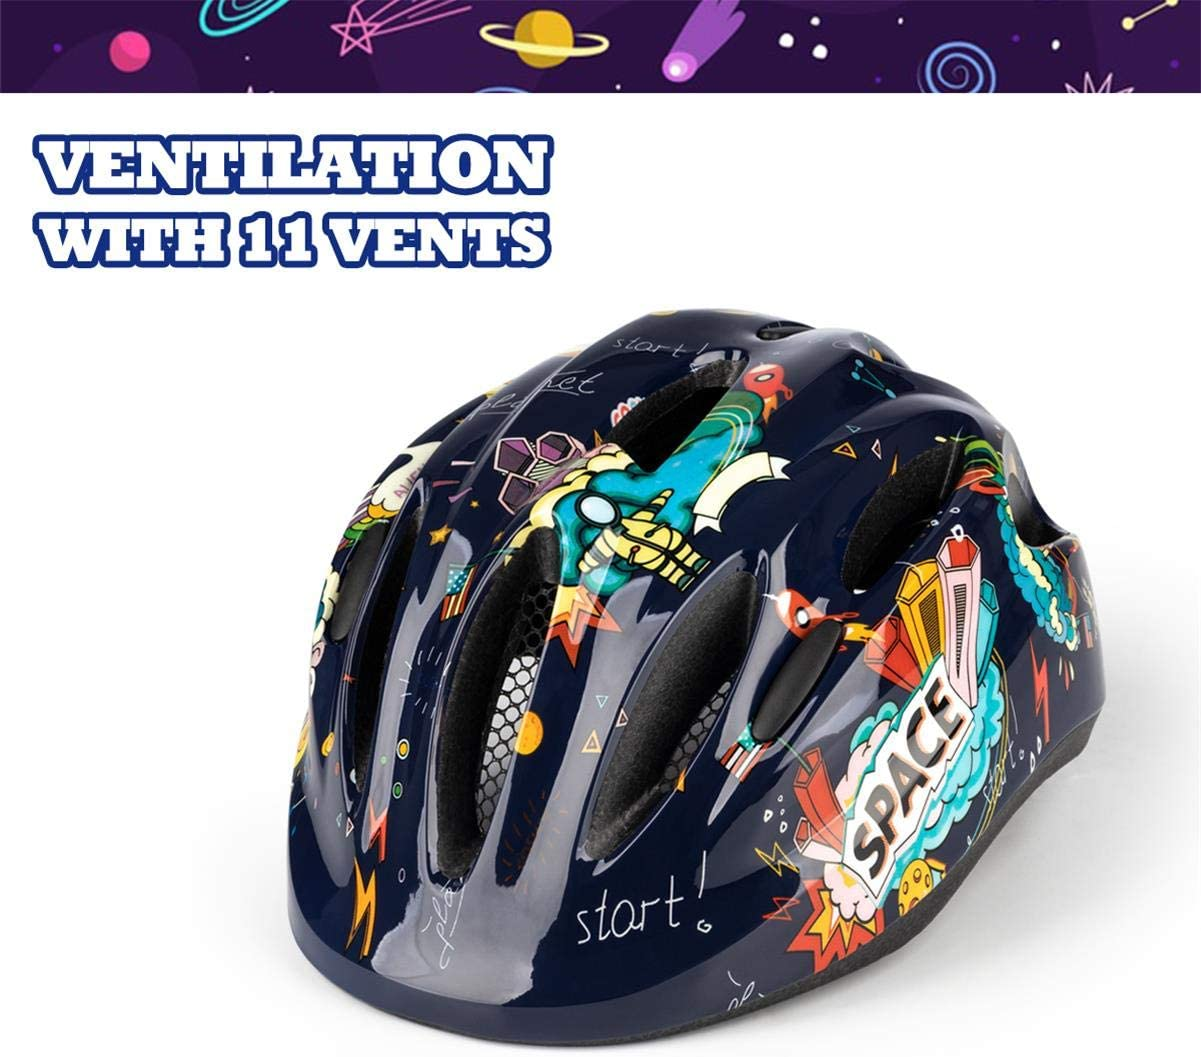 Helmet for Kids Boys Girls Child Ages 3-8 Adjustable with Taillight CPSC Scooter Bicycle 2 Sizes SUNRIMOON Toddler Bike Helmets